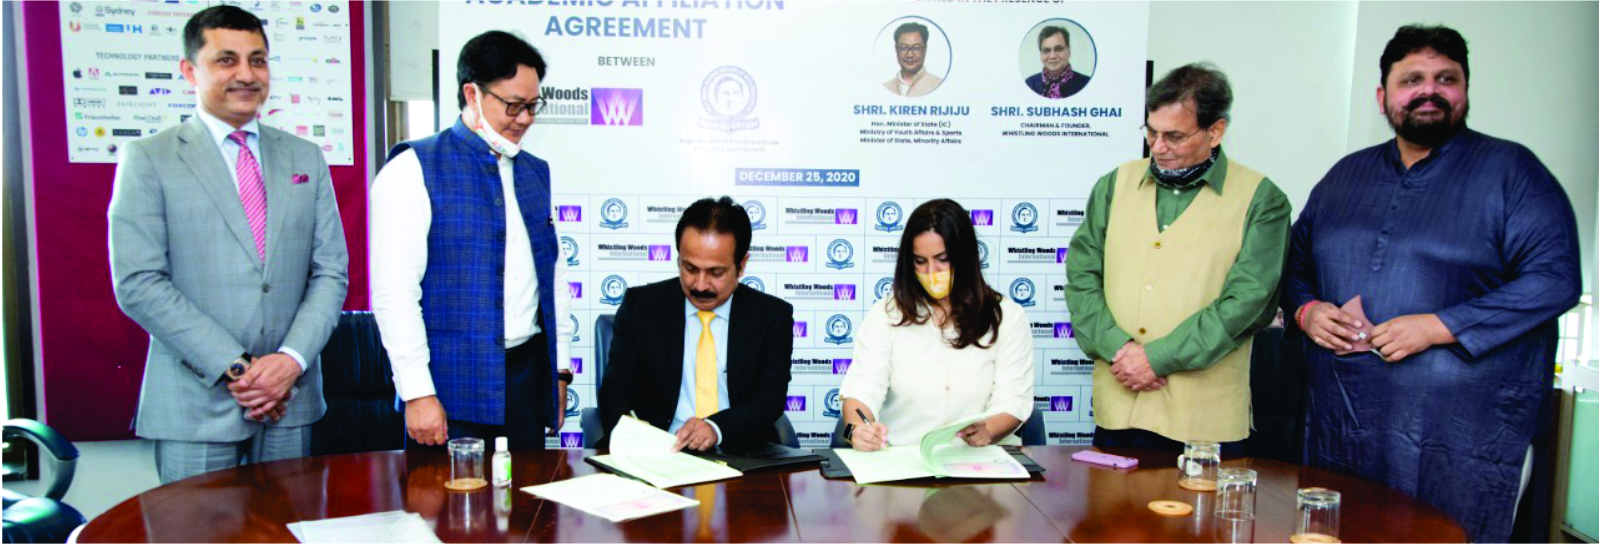 Signing of MoU between RGNIYD and Whistling Woods International, Mumbai for furthering academic excellence